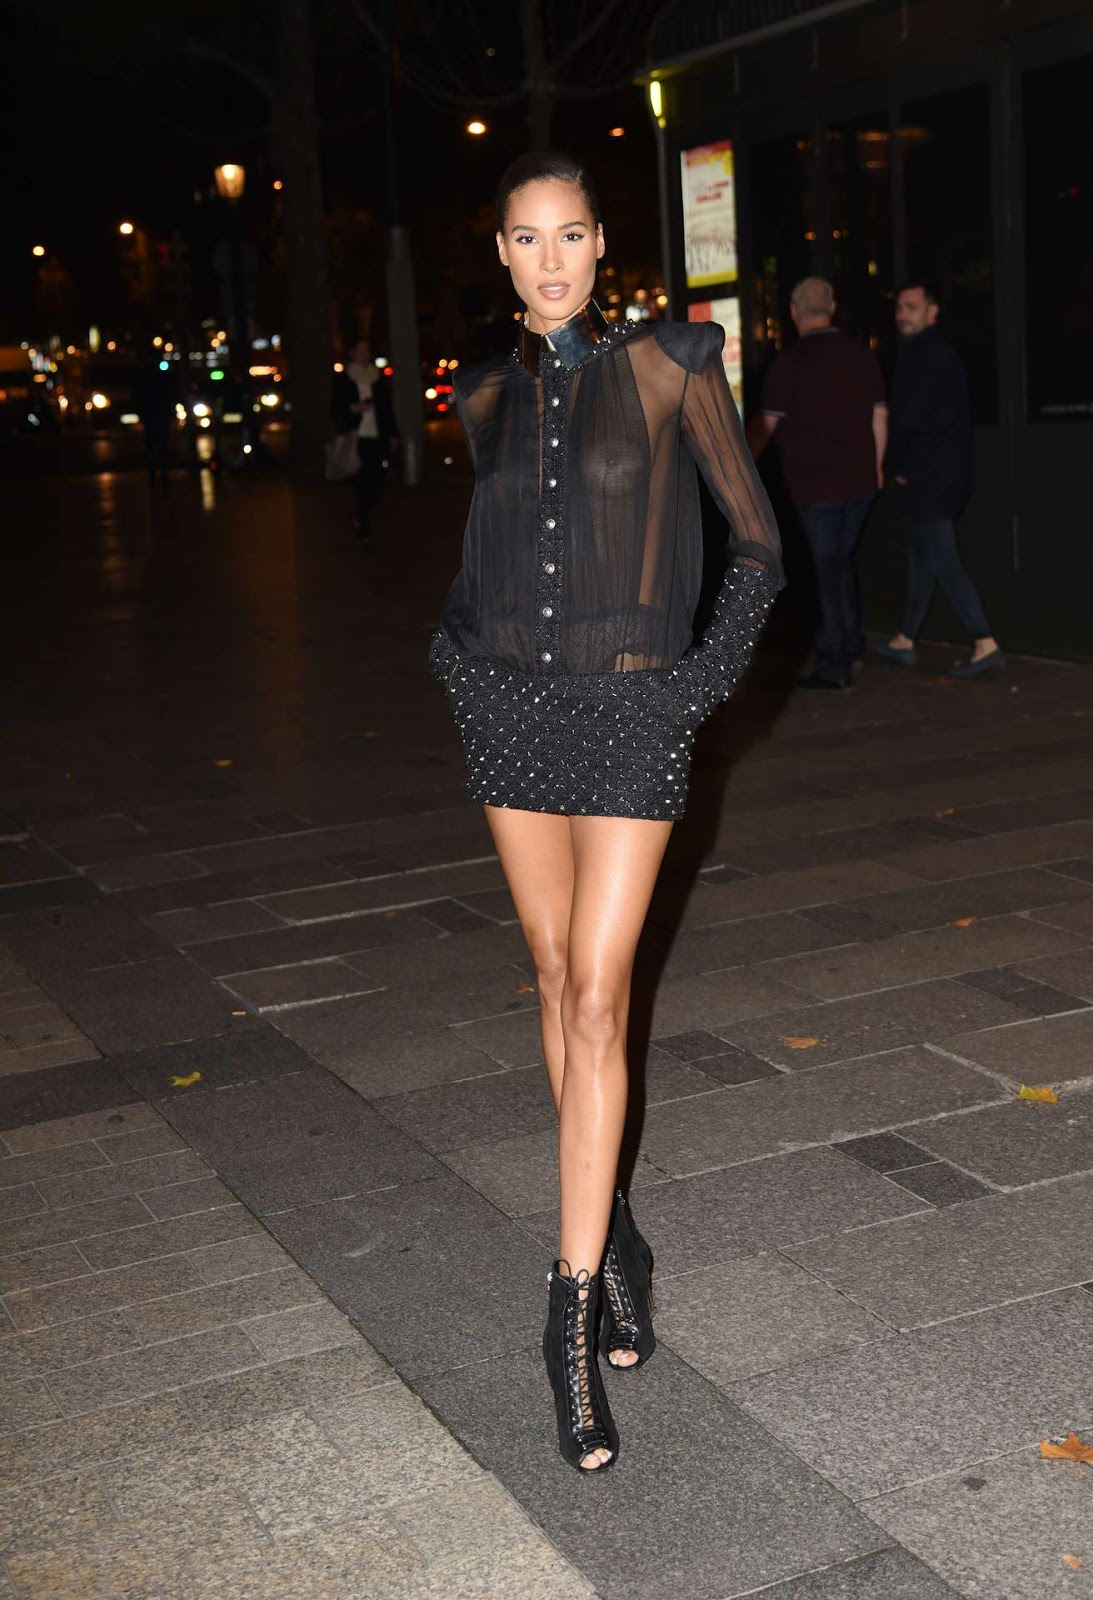 Cindy Bruna goes sheer and braless at the Paris Fashion Week Opening